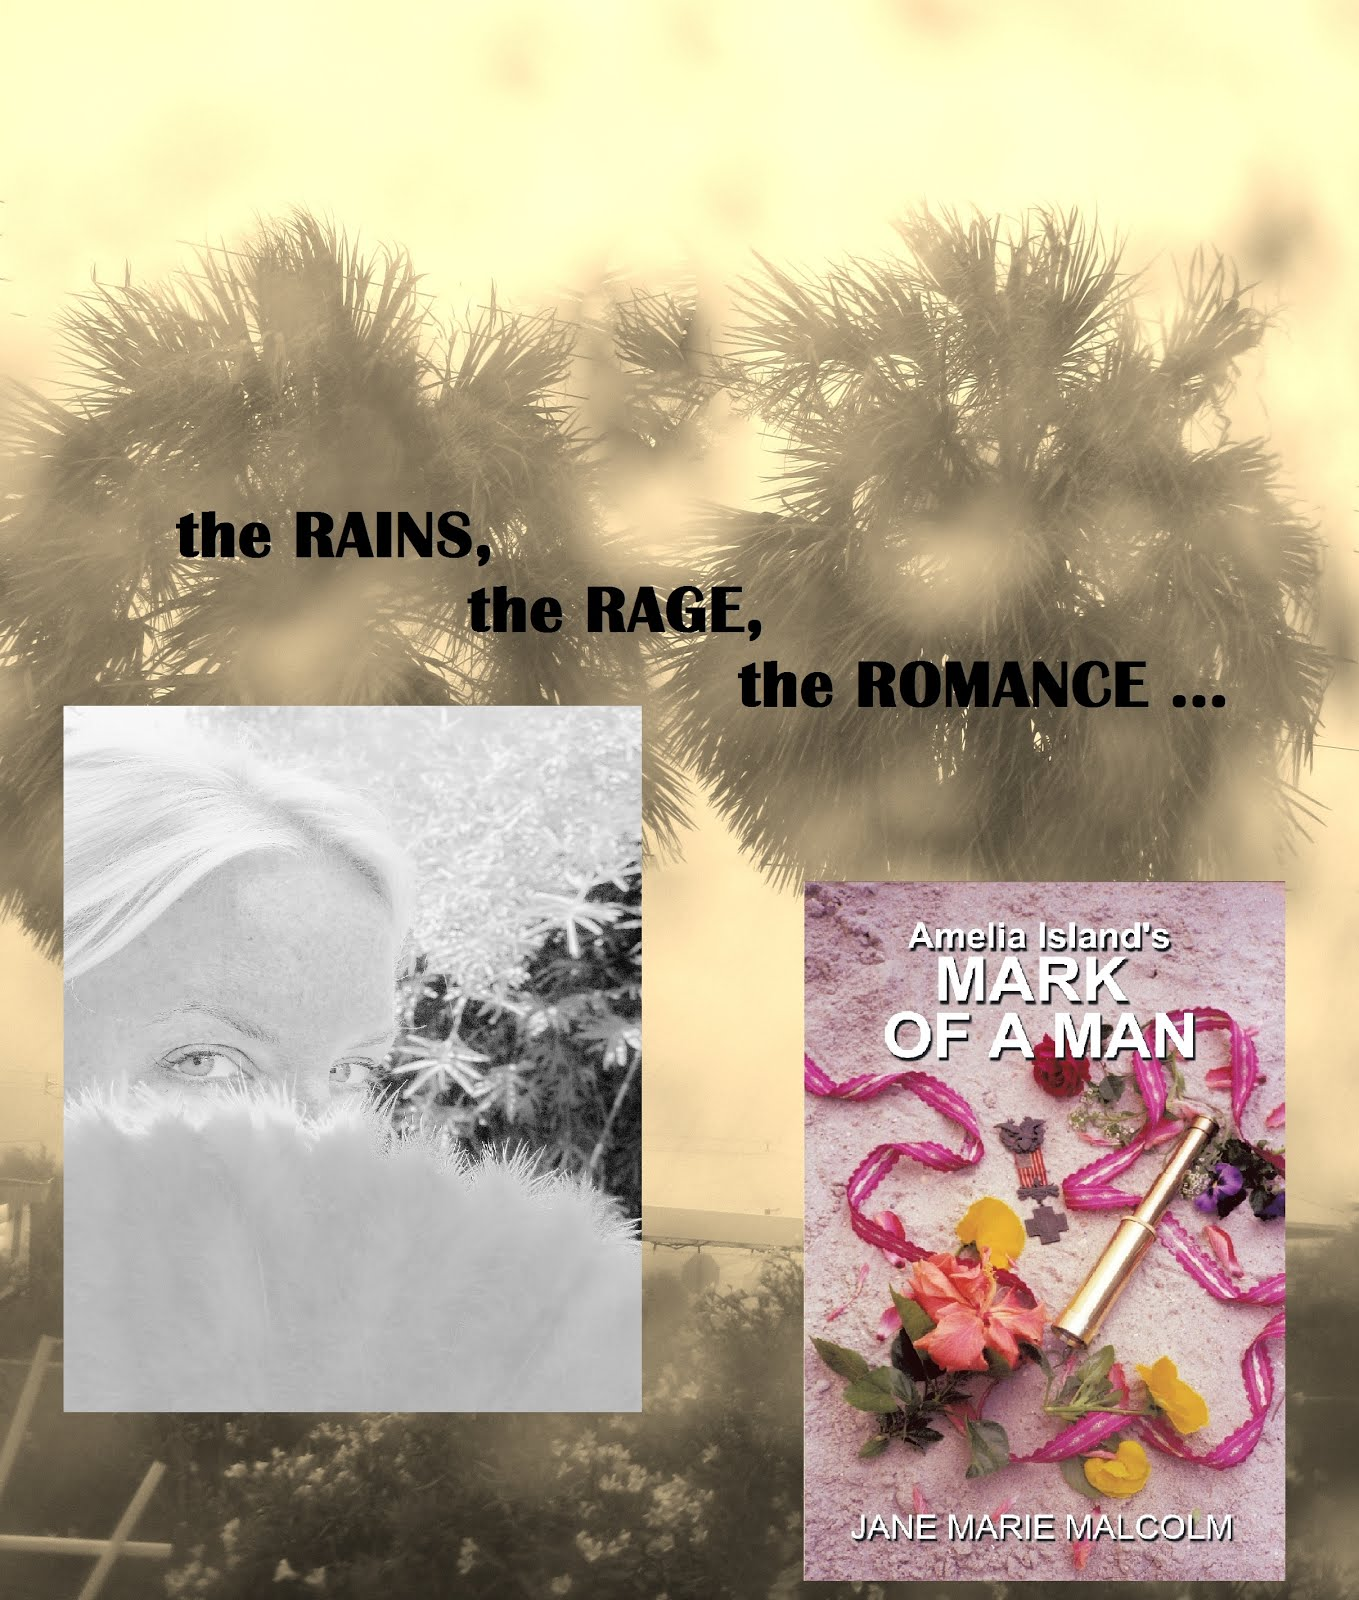 the RAINS, the RAGE, the ROMANCE